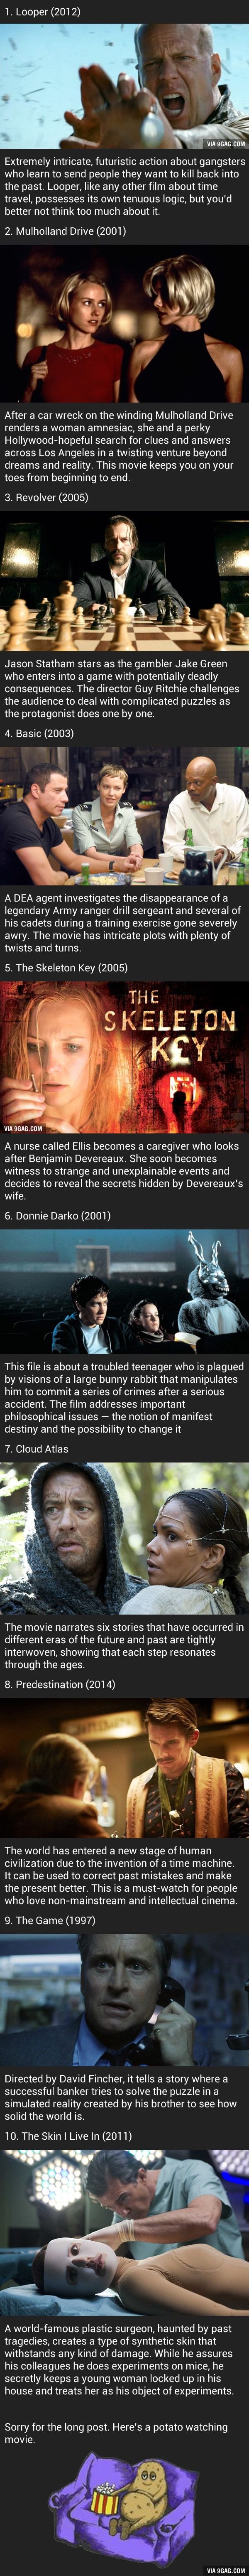 10 Movies That Will Rack Your Brain. Some Are Less Known But Still Awesome - 9GAG